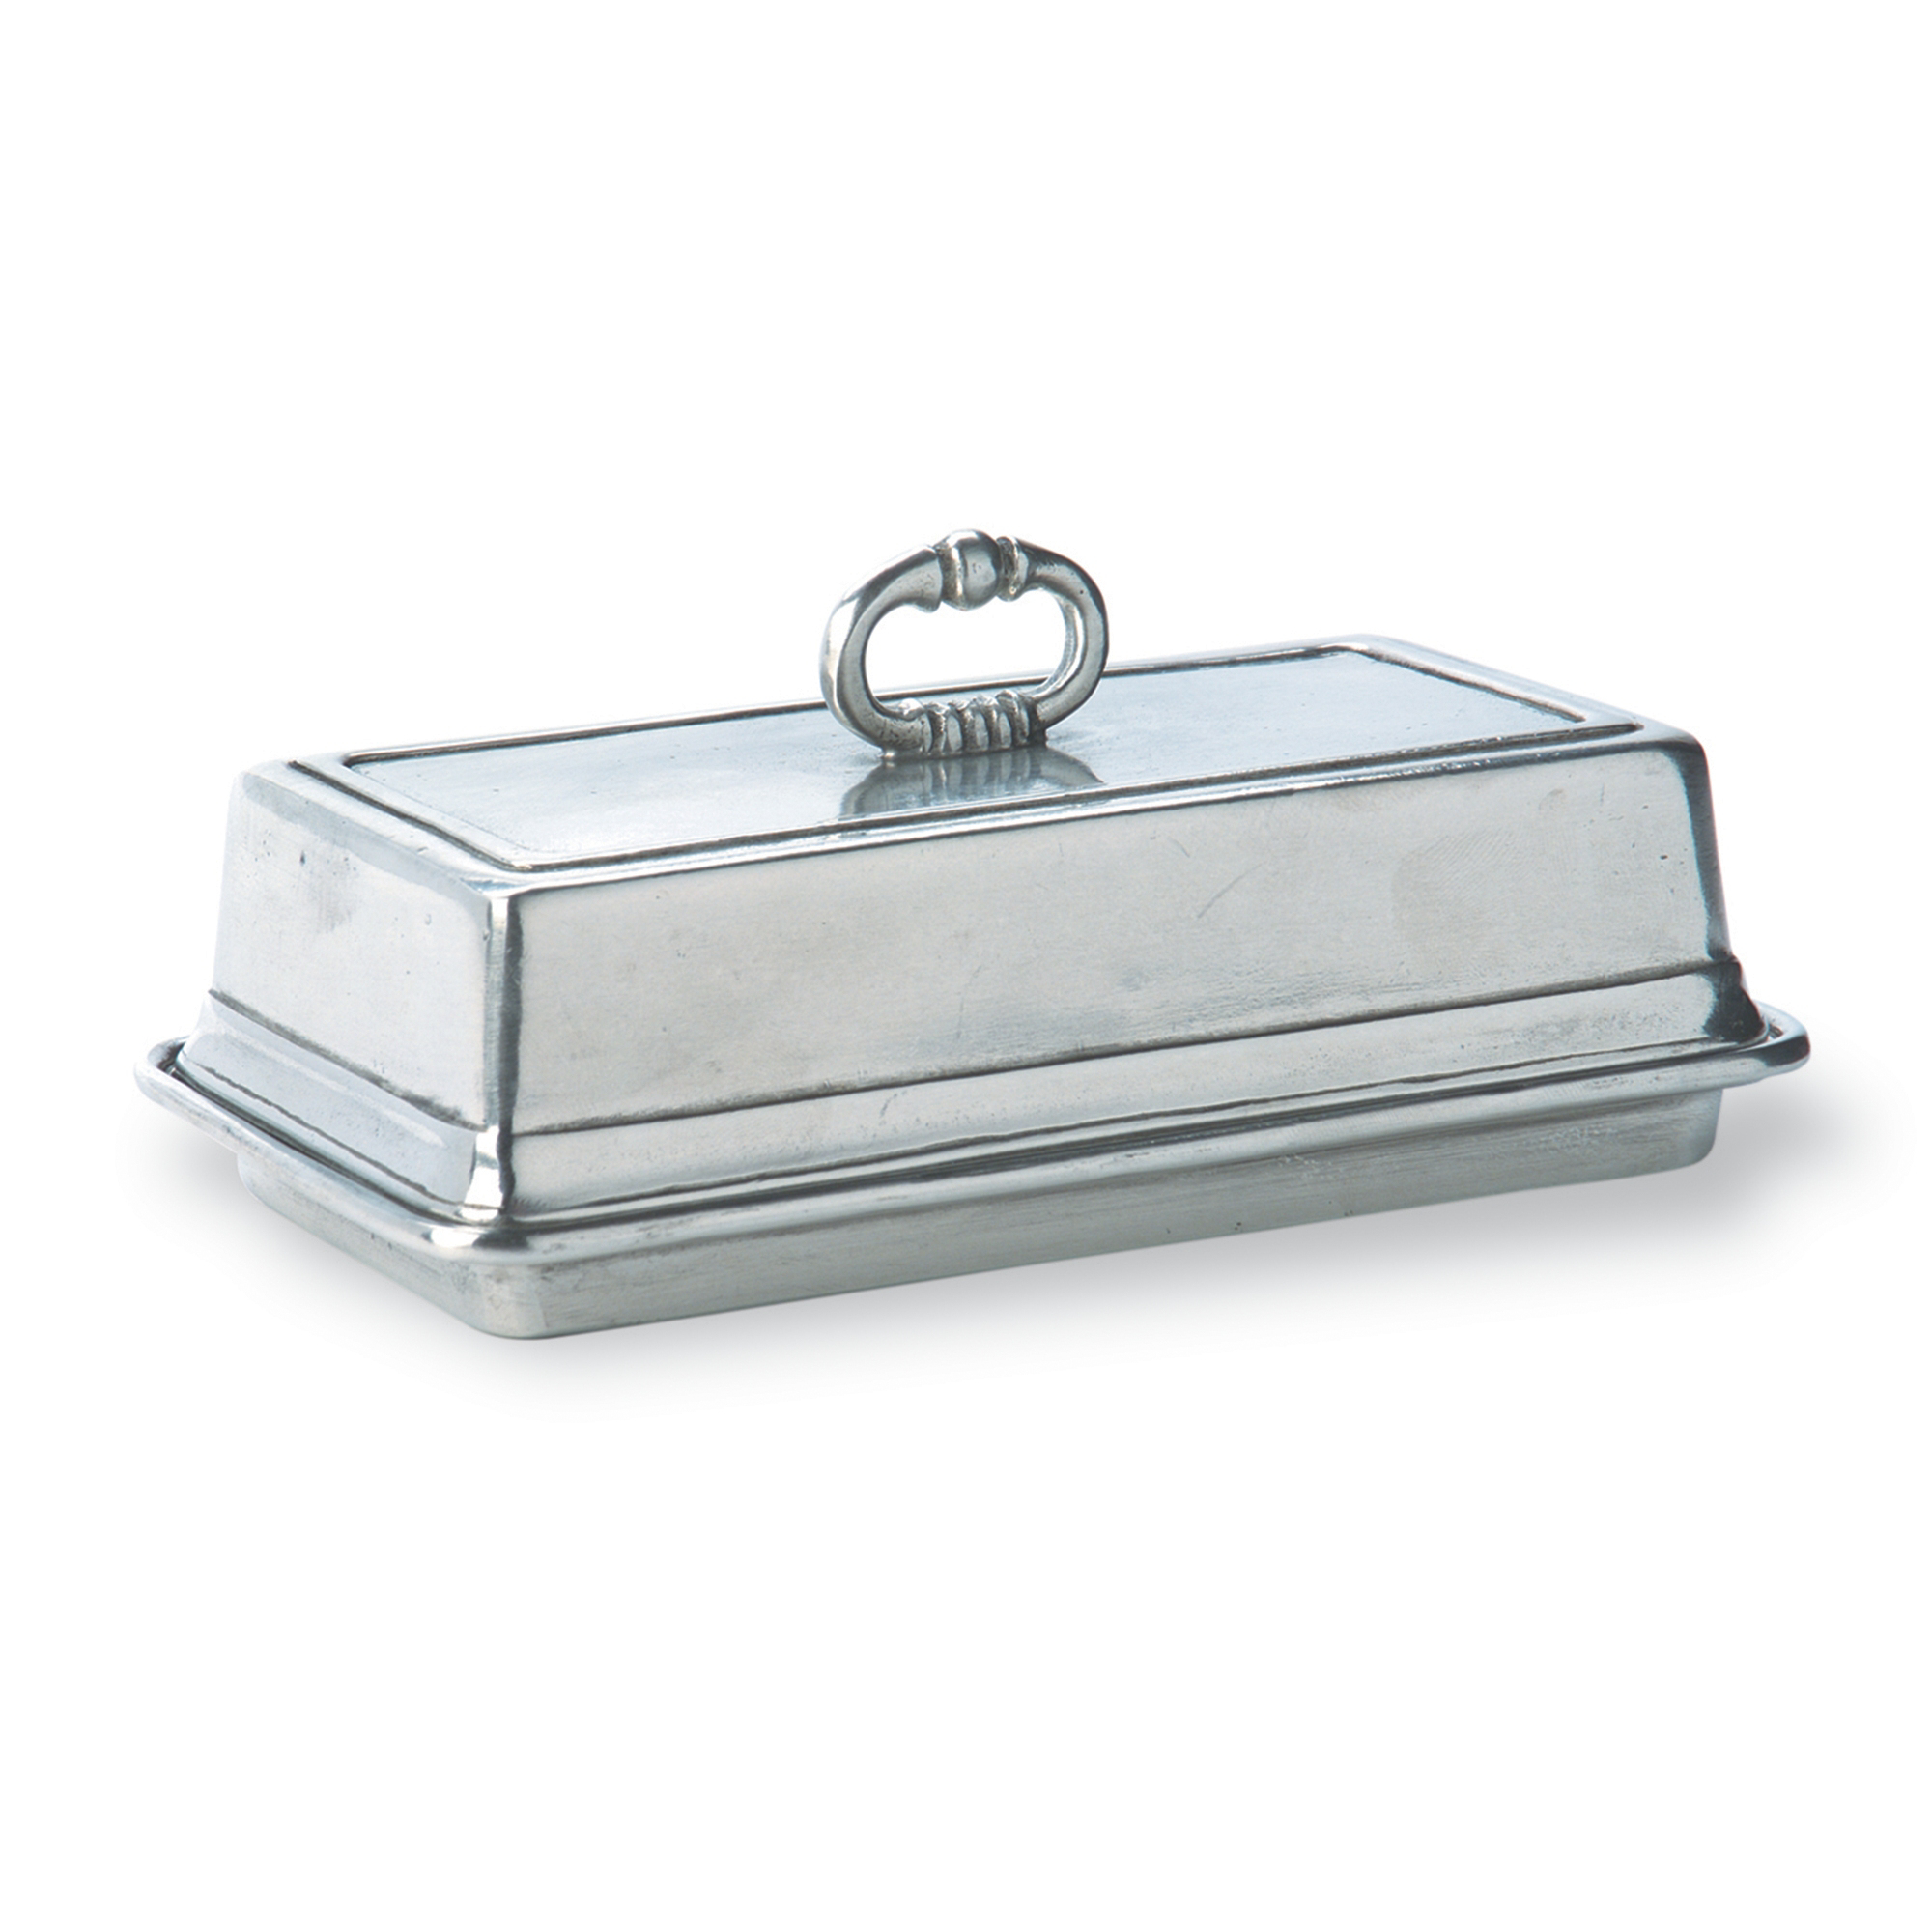 Match Butter Dish with Cover